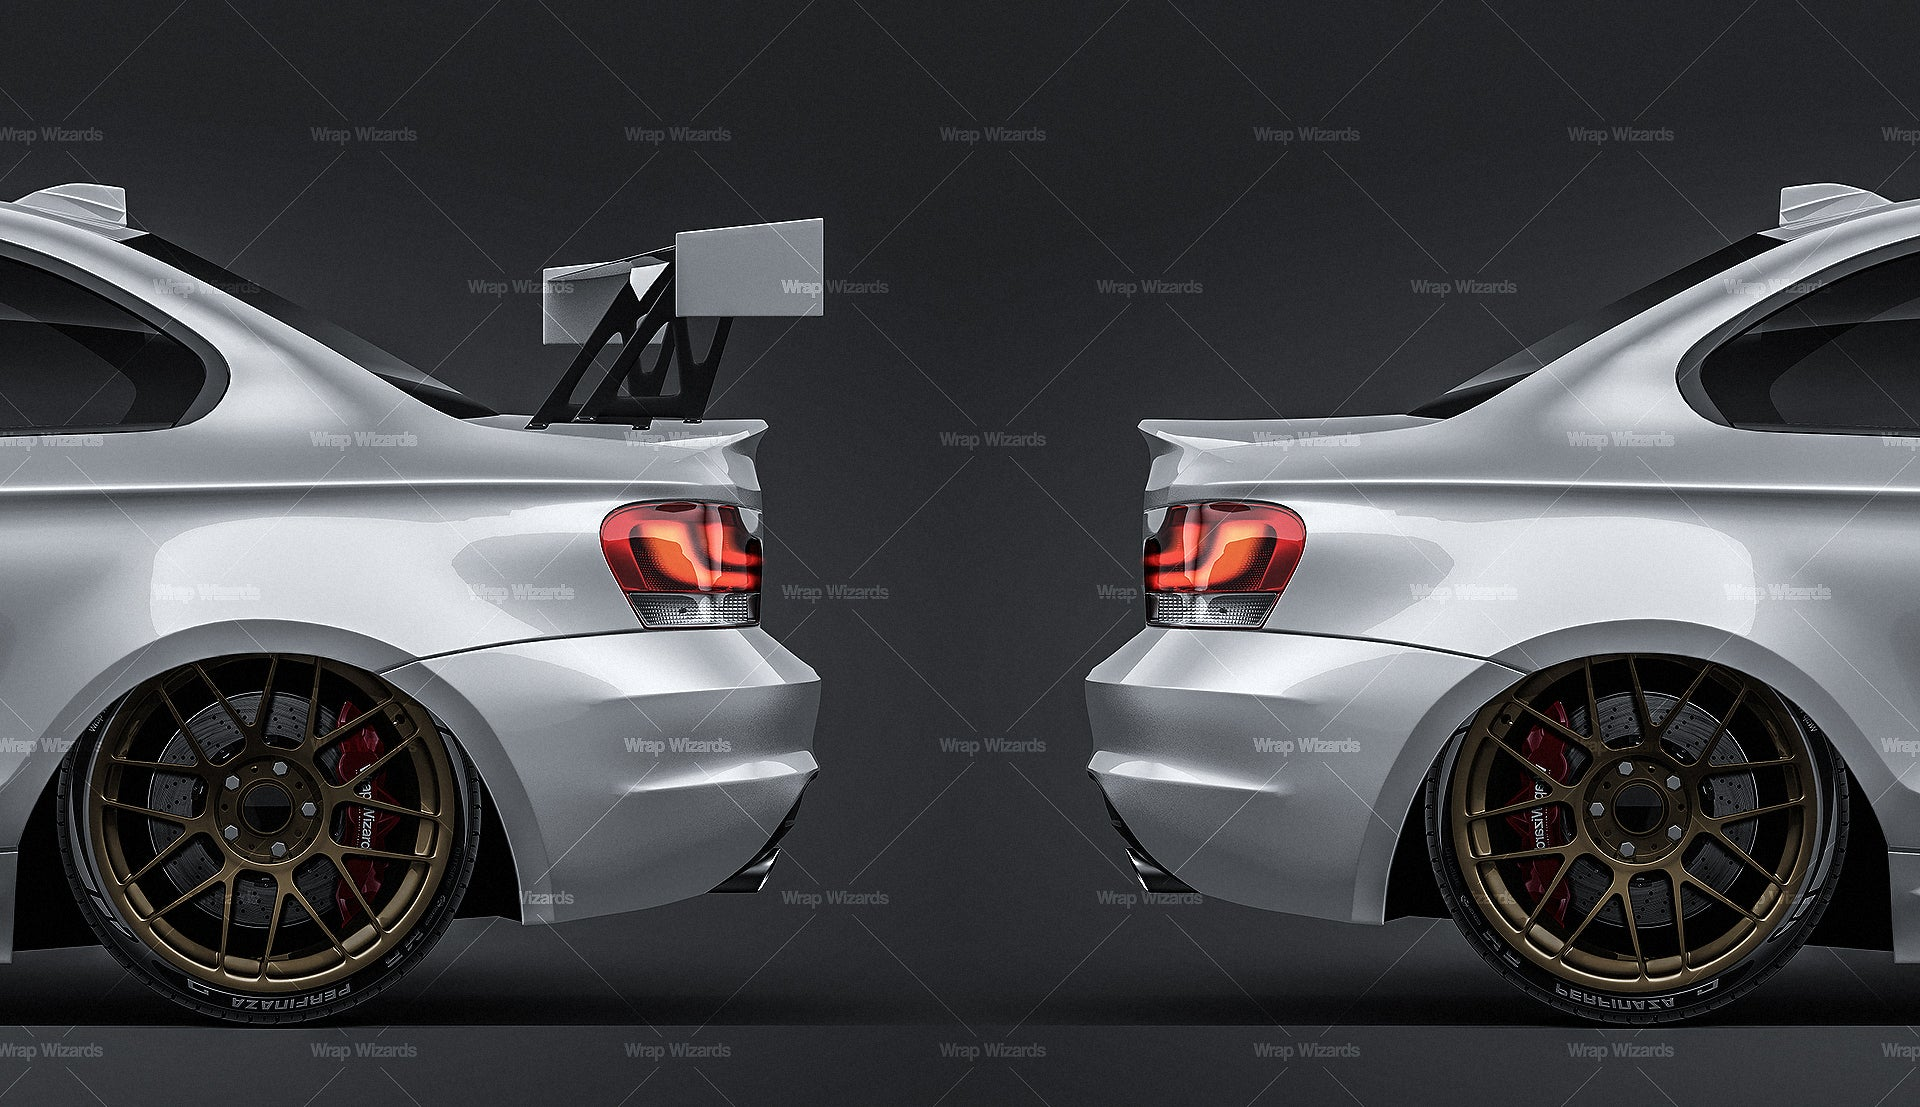 RACING WING SPOILER - all sides Mockup Template.psd